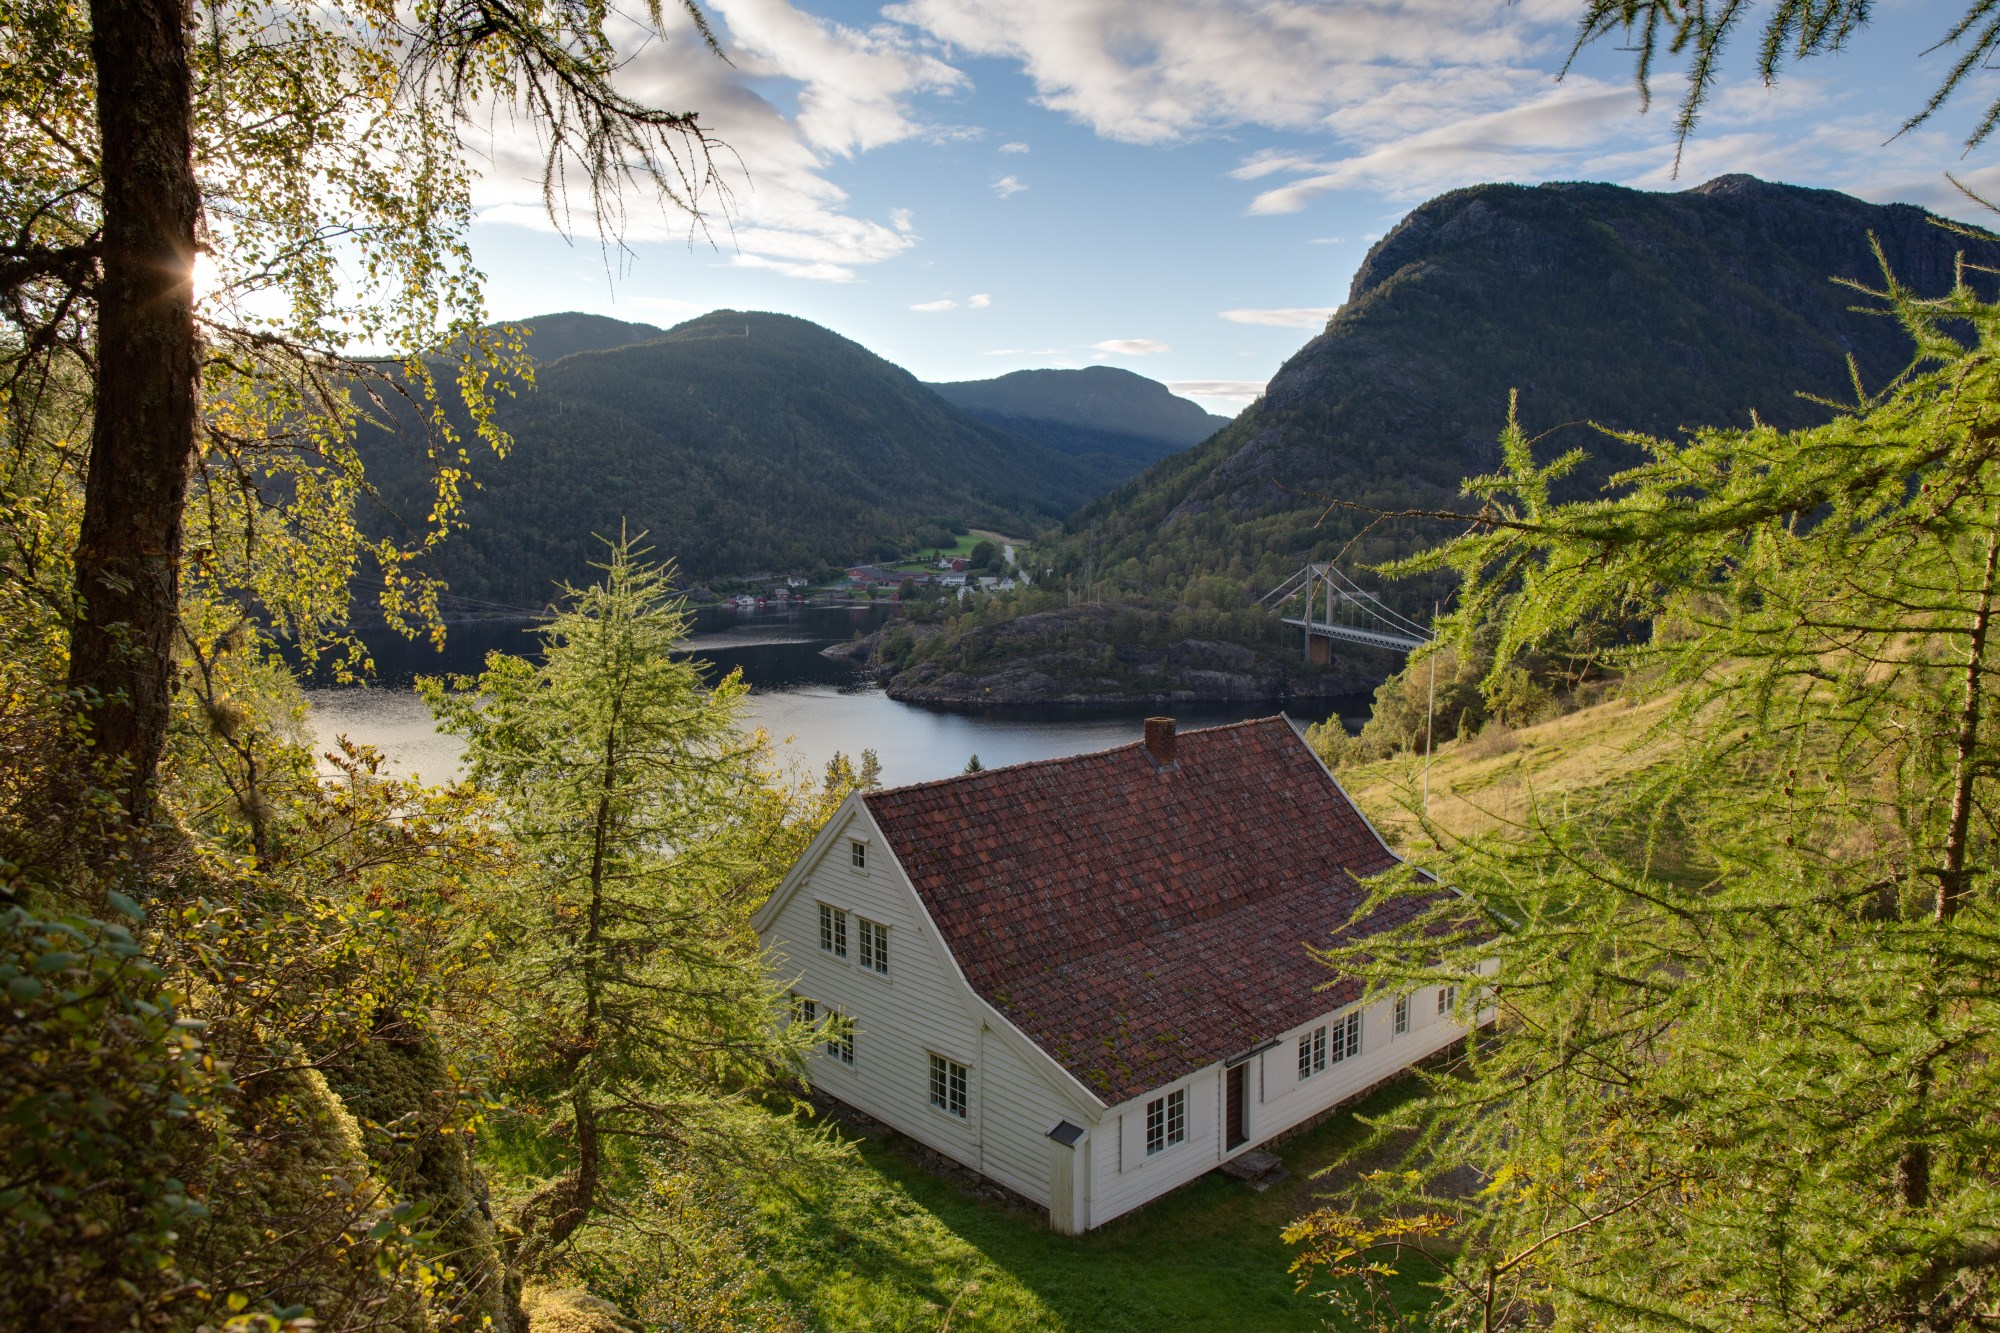 Picture of Hålandstunet farmstead, Erfjord